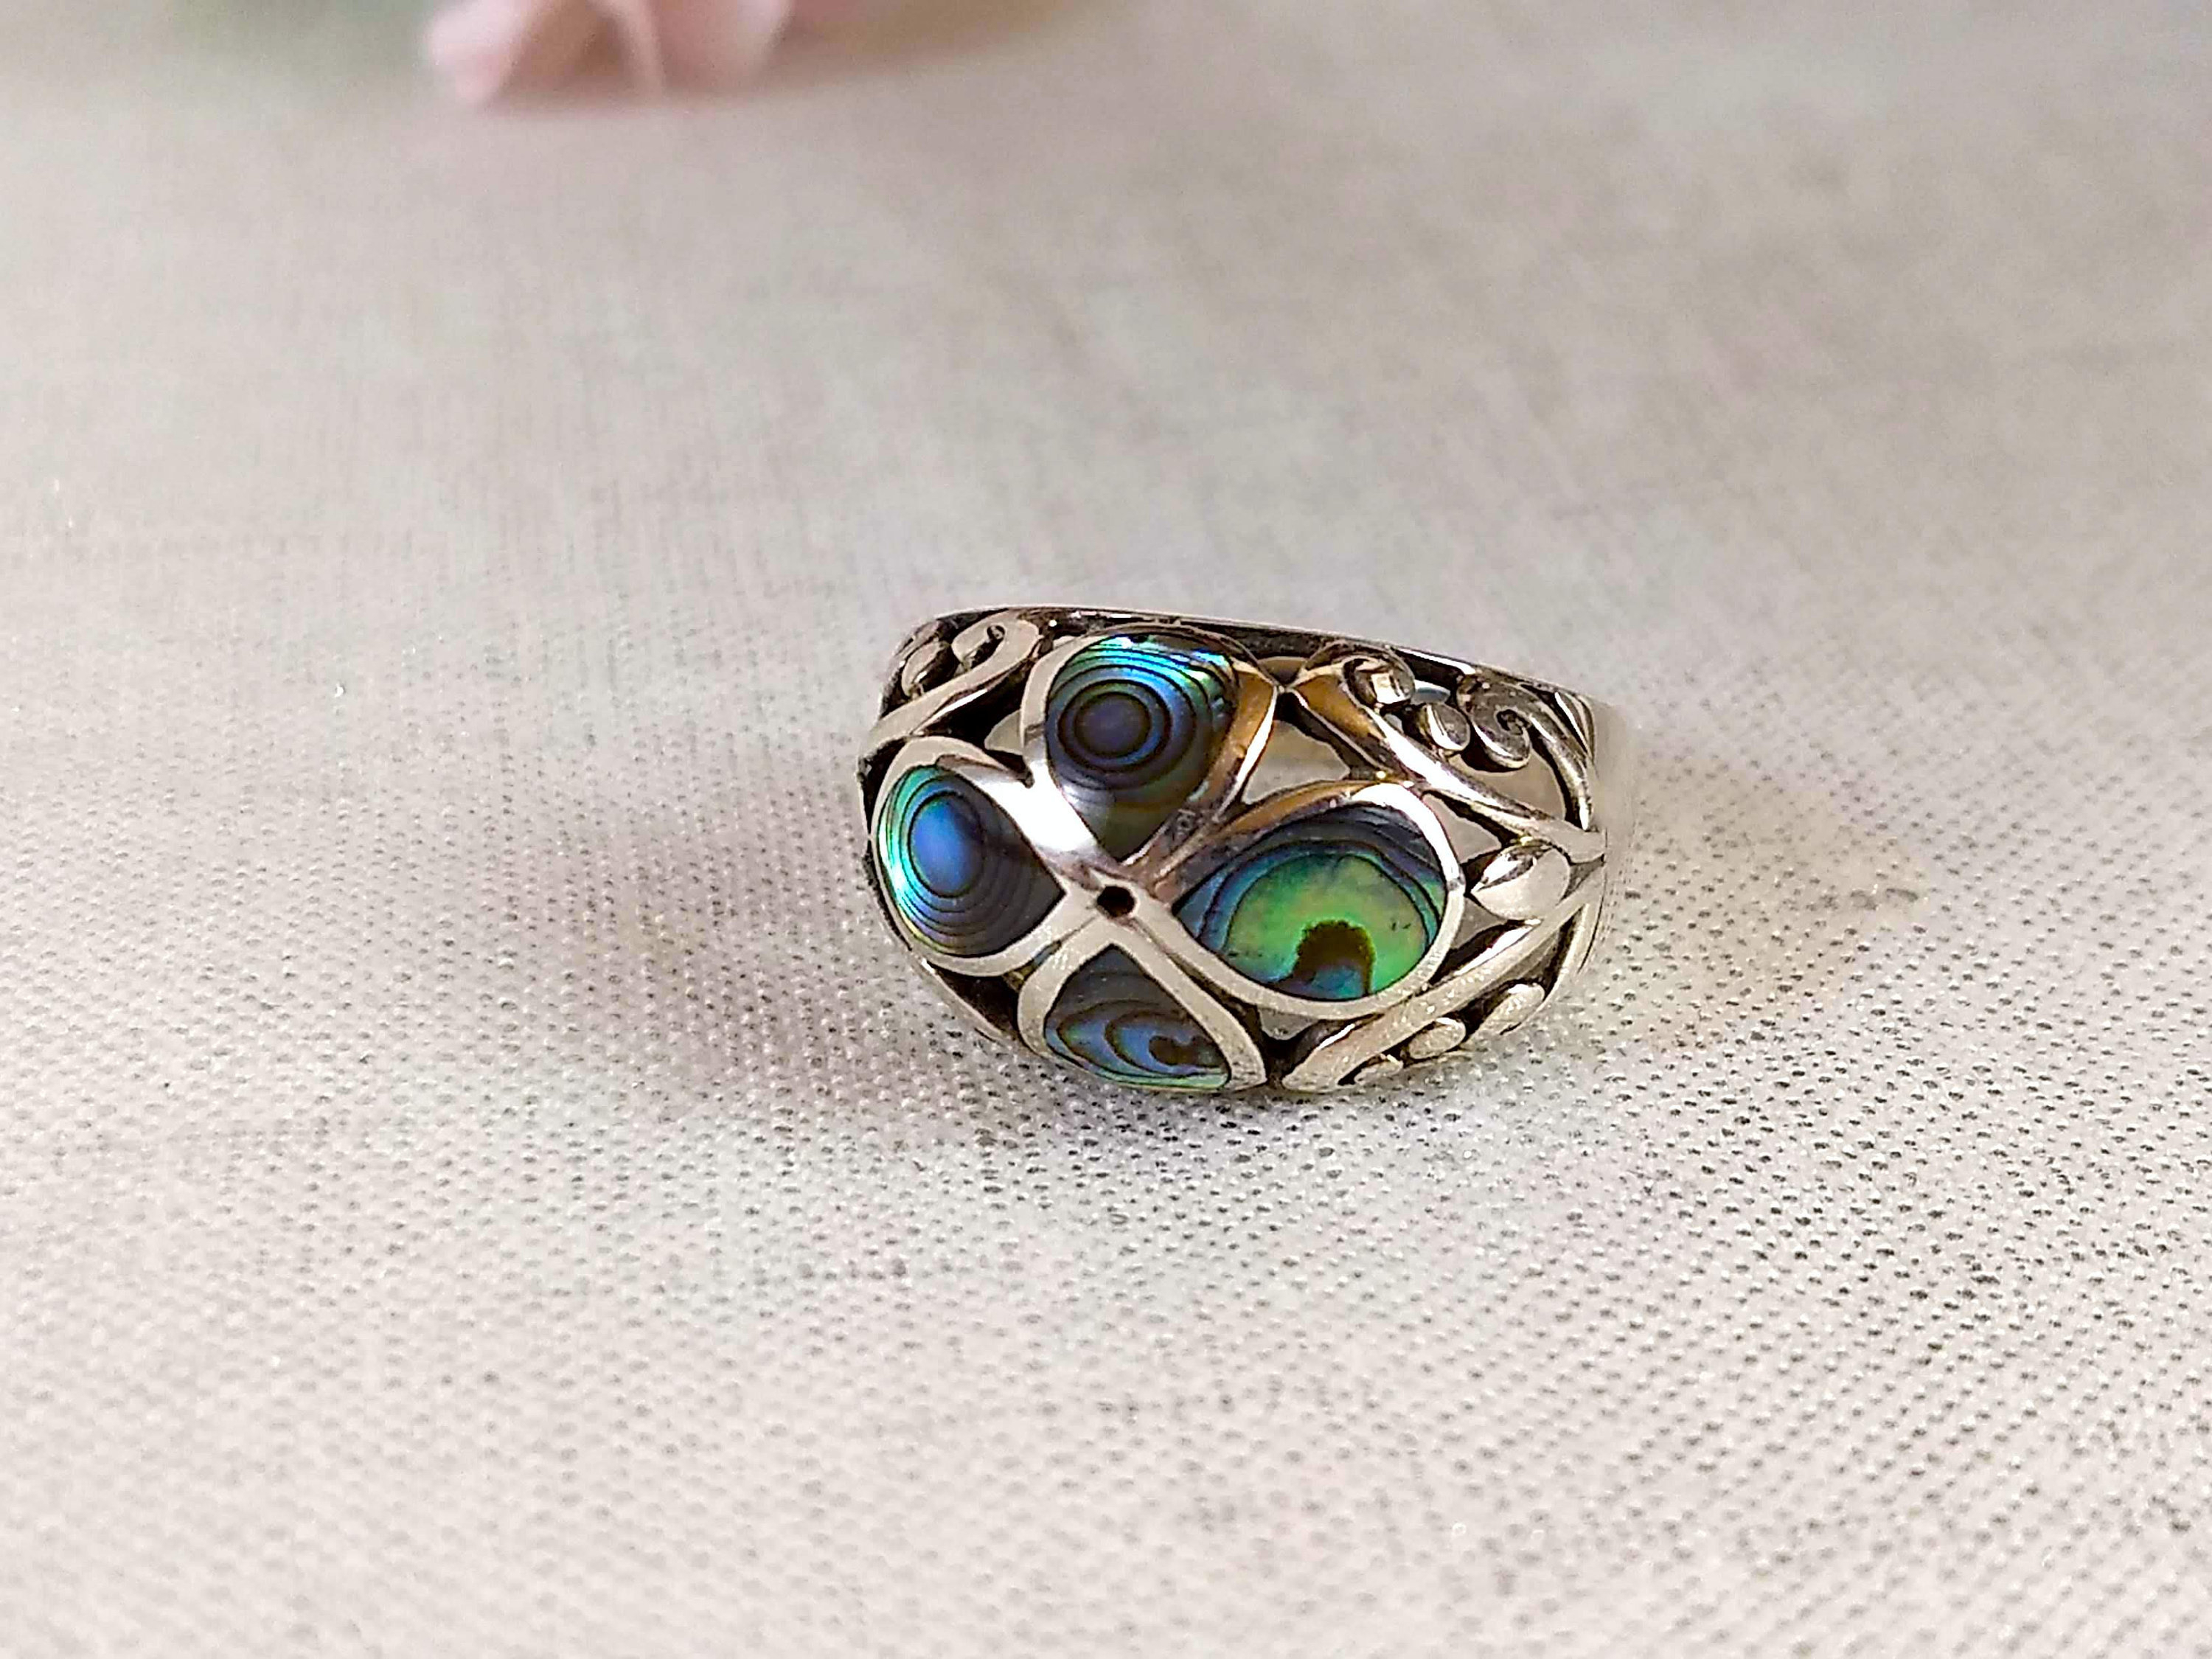 Vintage Sterling Abalone Ring Size 8.5, Four Leaf Clover Ring, Sterling  Silver 925 Stamped, Ocean Sea Mermaid Mystical Jewelry Gifts For Her Pertaining To Most Popular Lucky Four Leaf Clover Open Rings (Gallery 23 of 25)